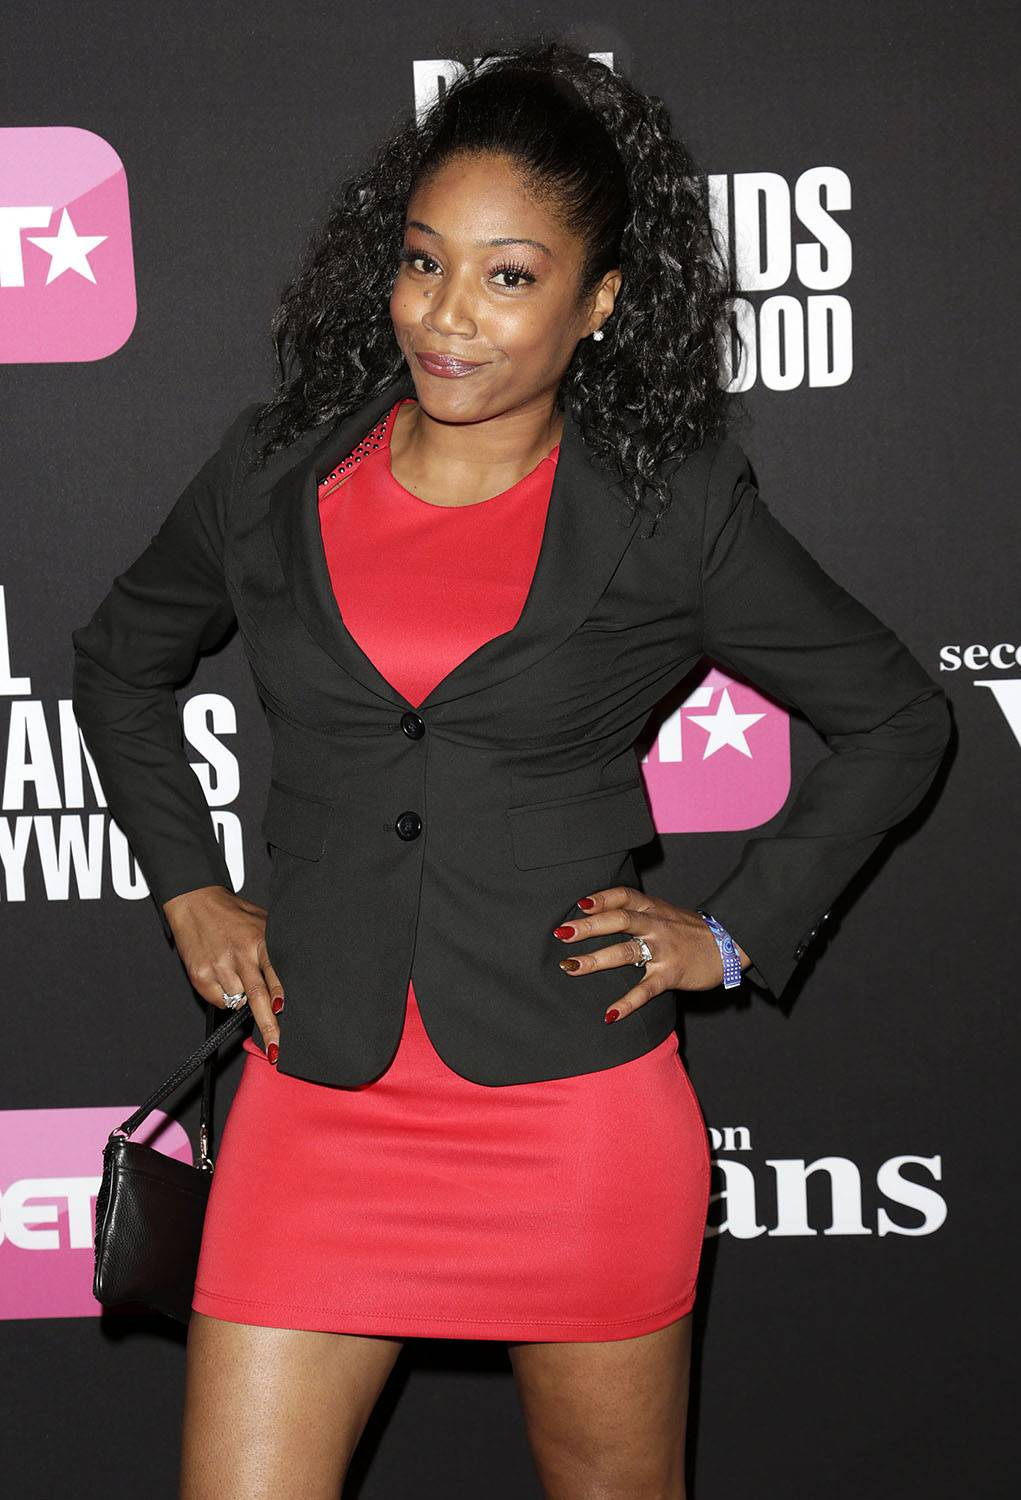 Familiar Face? - If you have a feeling that you've seen Tiffany on BET before, it's likely that you have. She plays the characterTiffany (surprise!) on Real Husbands of Hollywood. (Photo: Brian To/WENN.com)